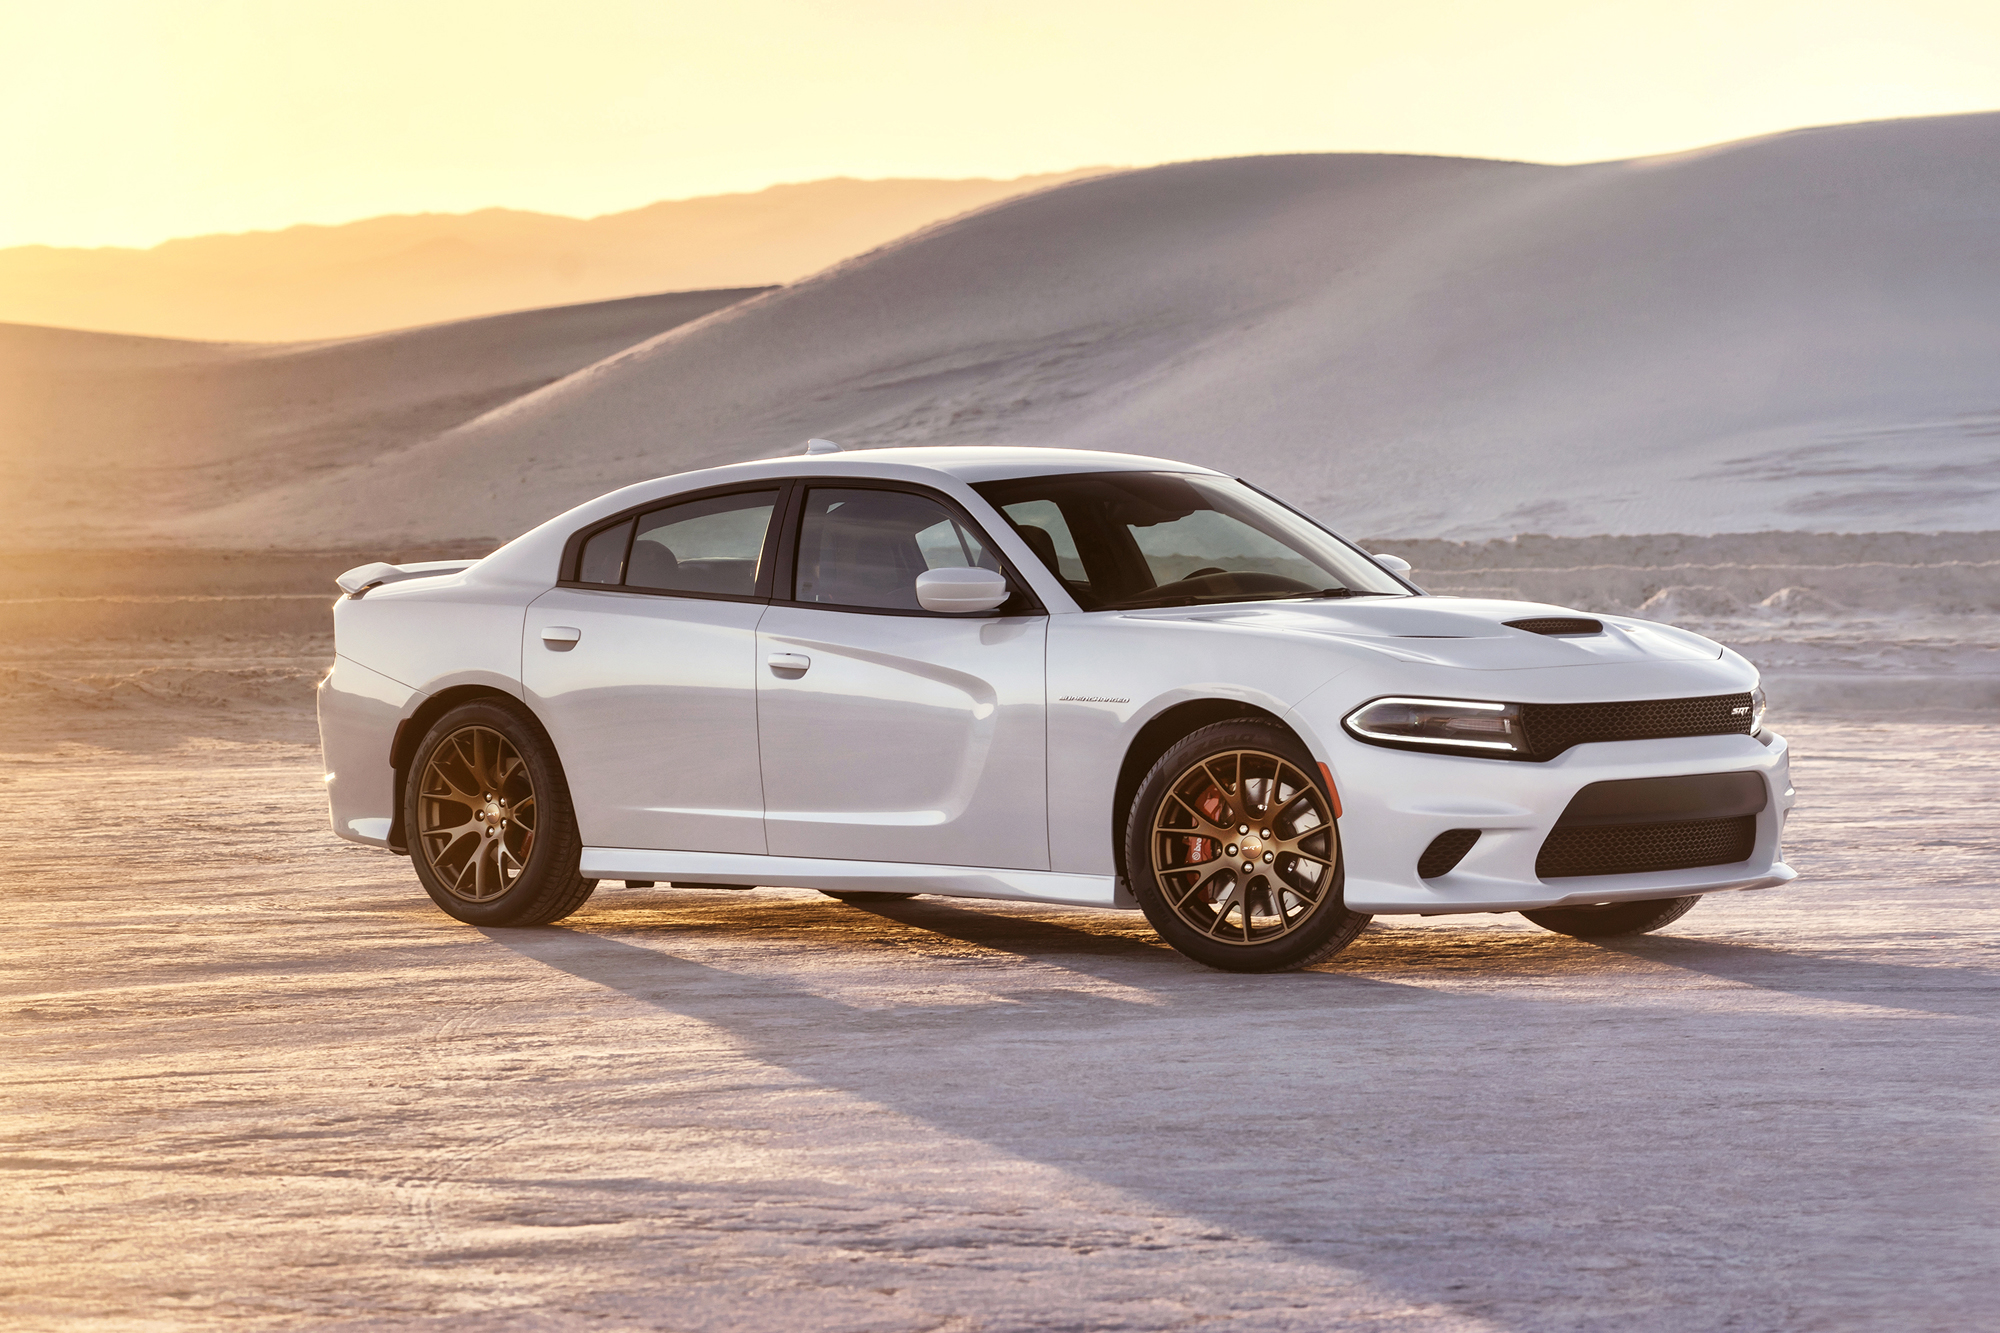 the new 2015 dodge charger srt hellcat completes the in seconds the mile in 11 seconds and tops out at pretty impressive stuff - Dodge Challenger 2015 Srt8 White